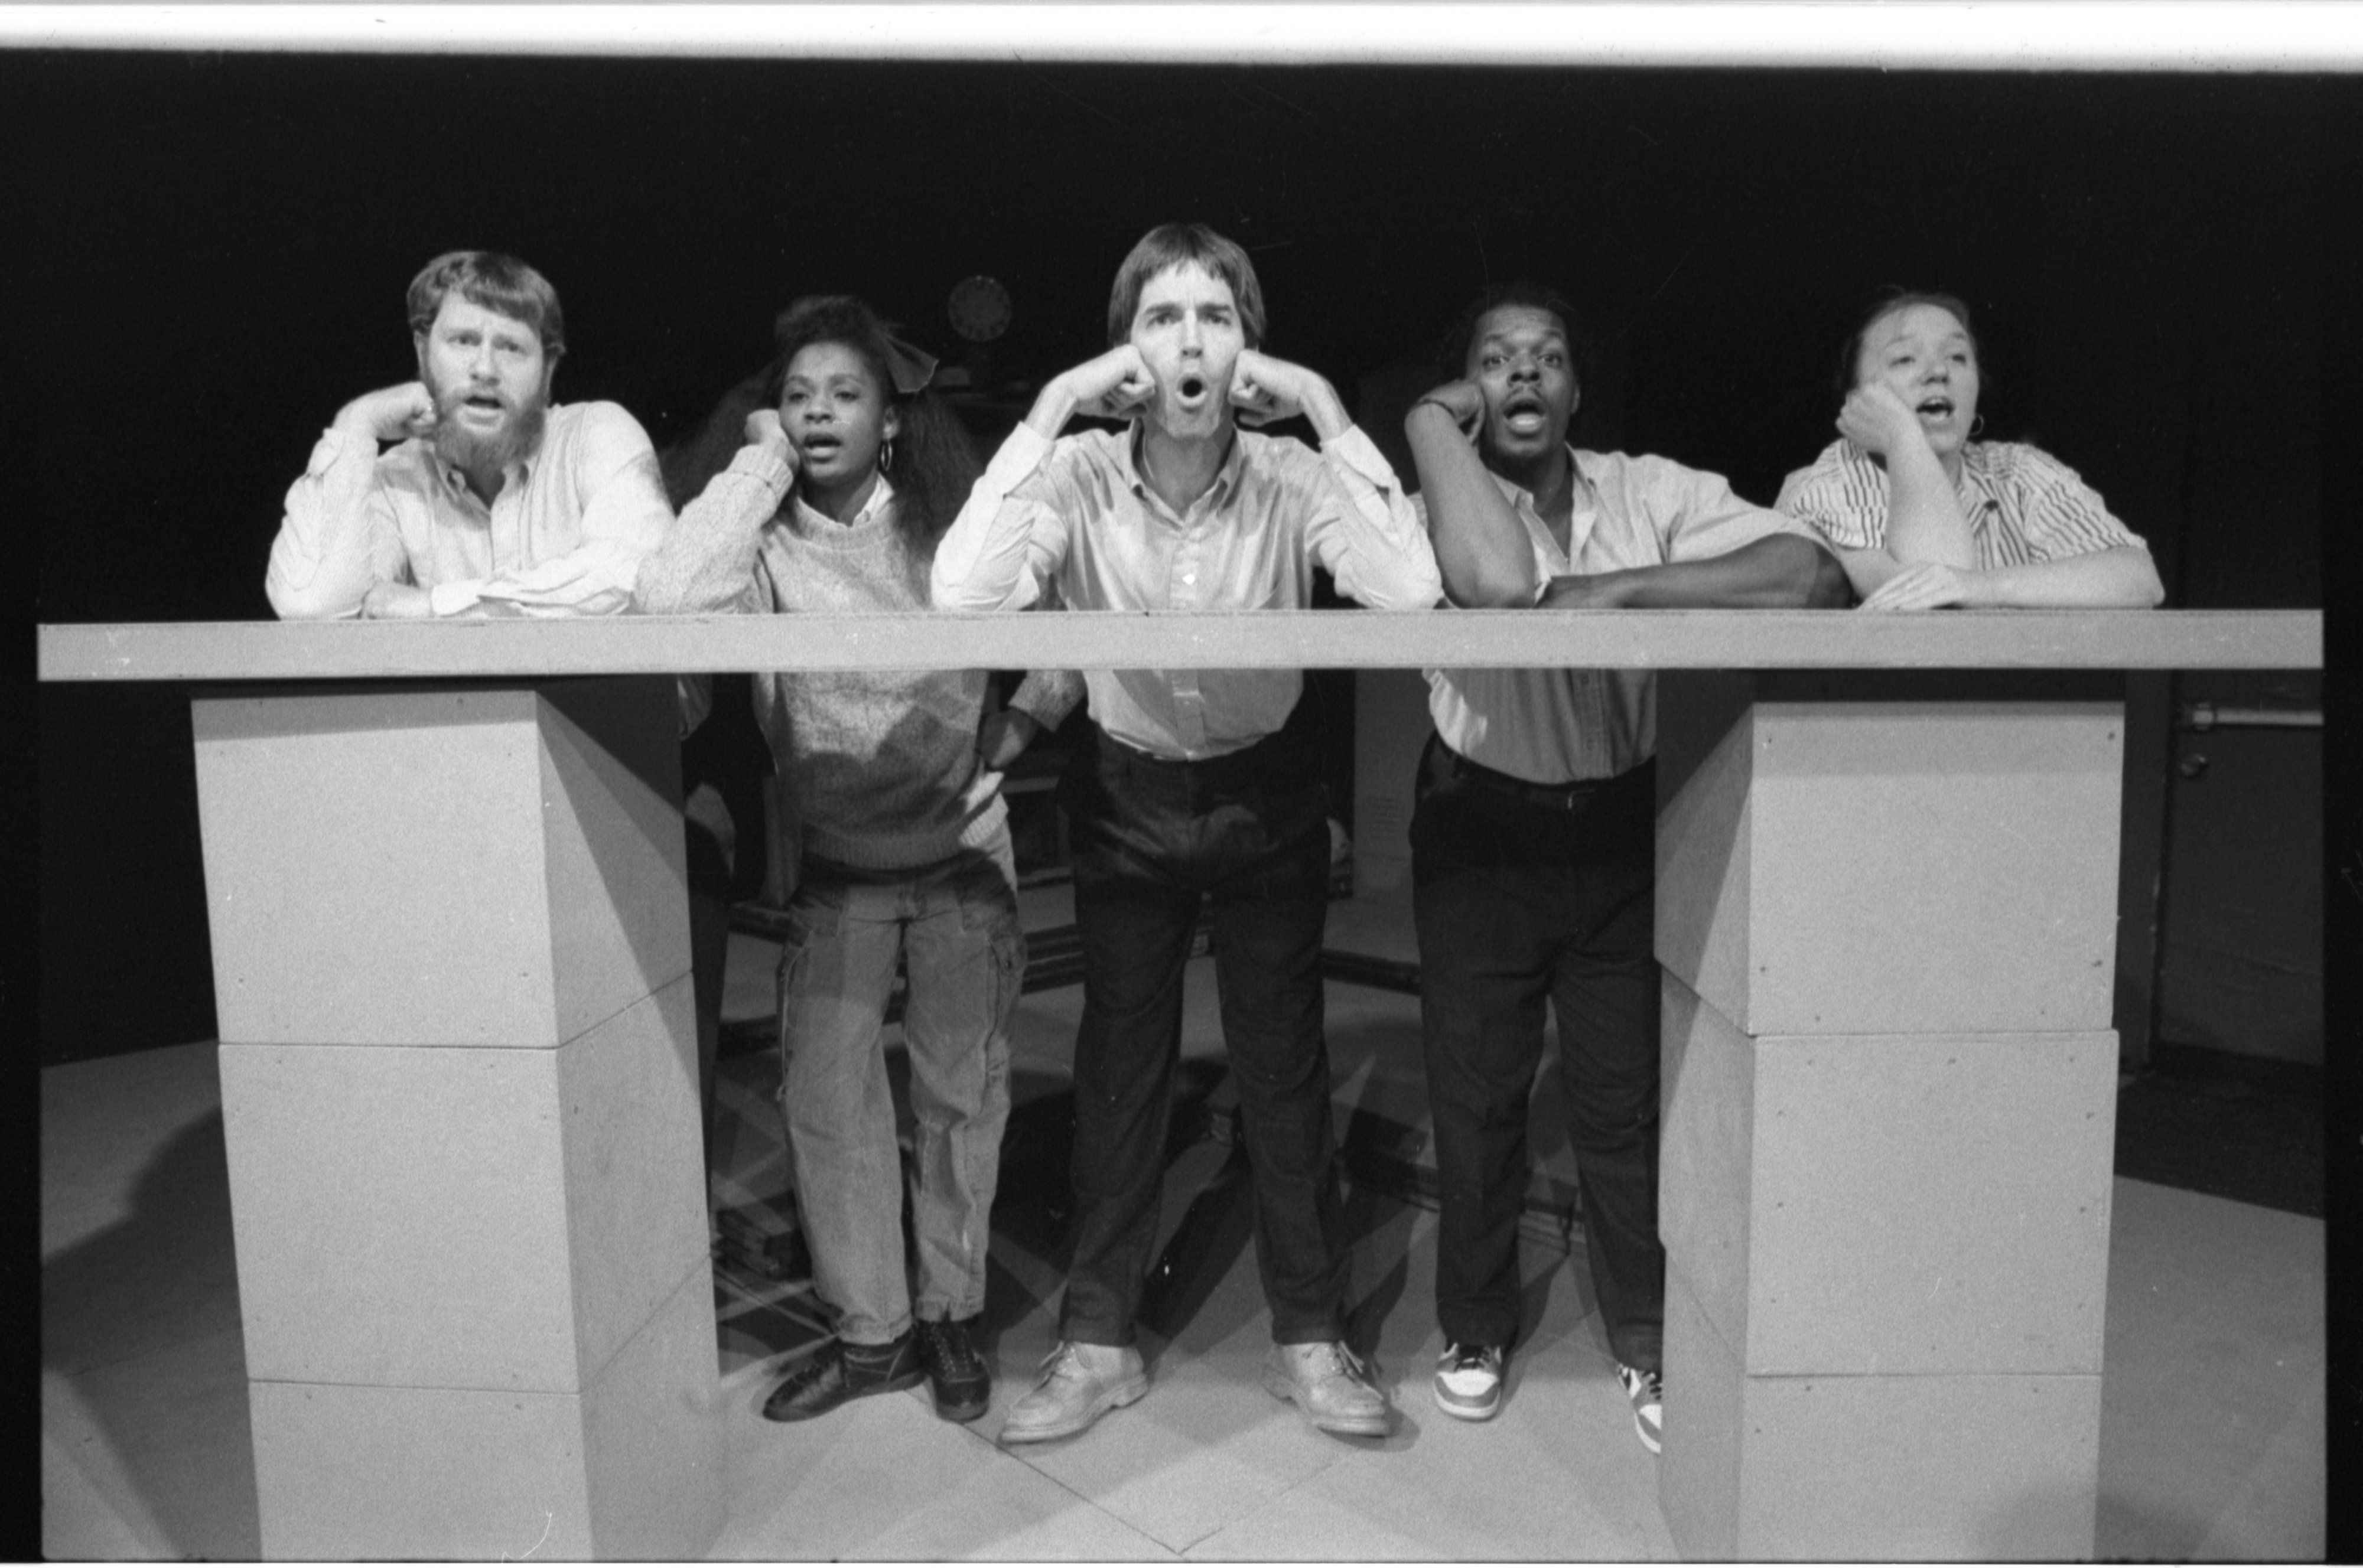 'Worksong' cast members' chorus talk about their situation, October 1986 image